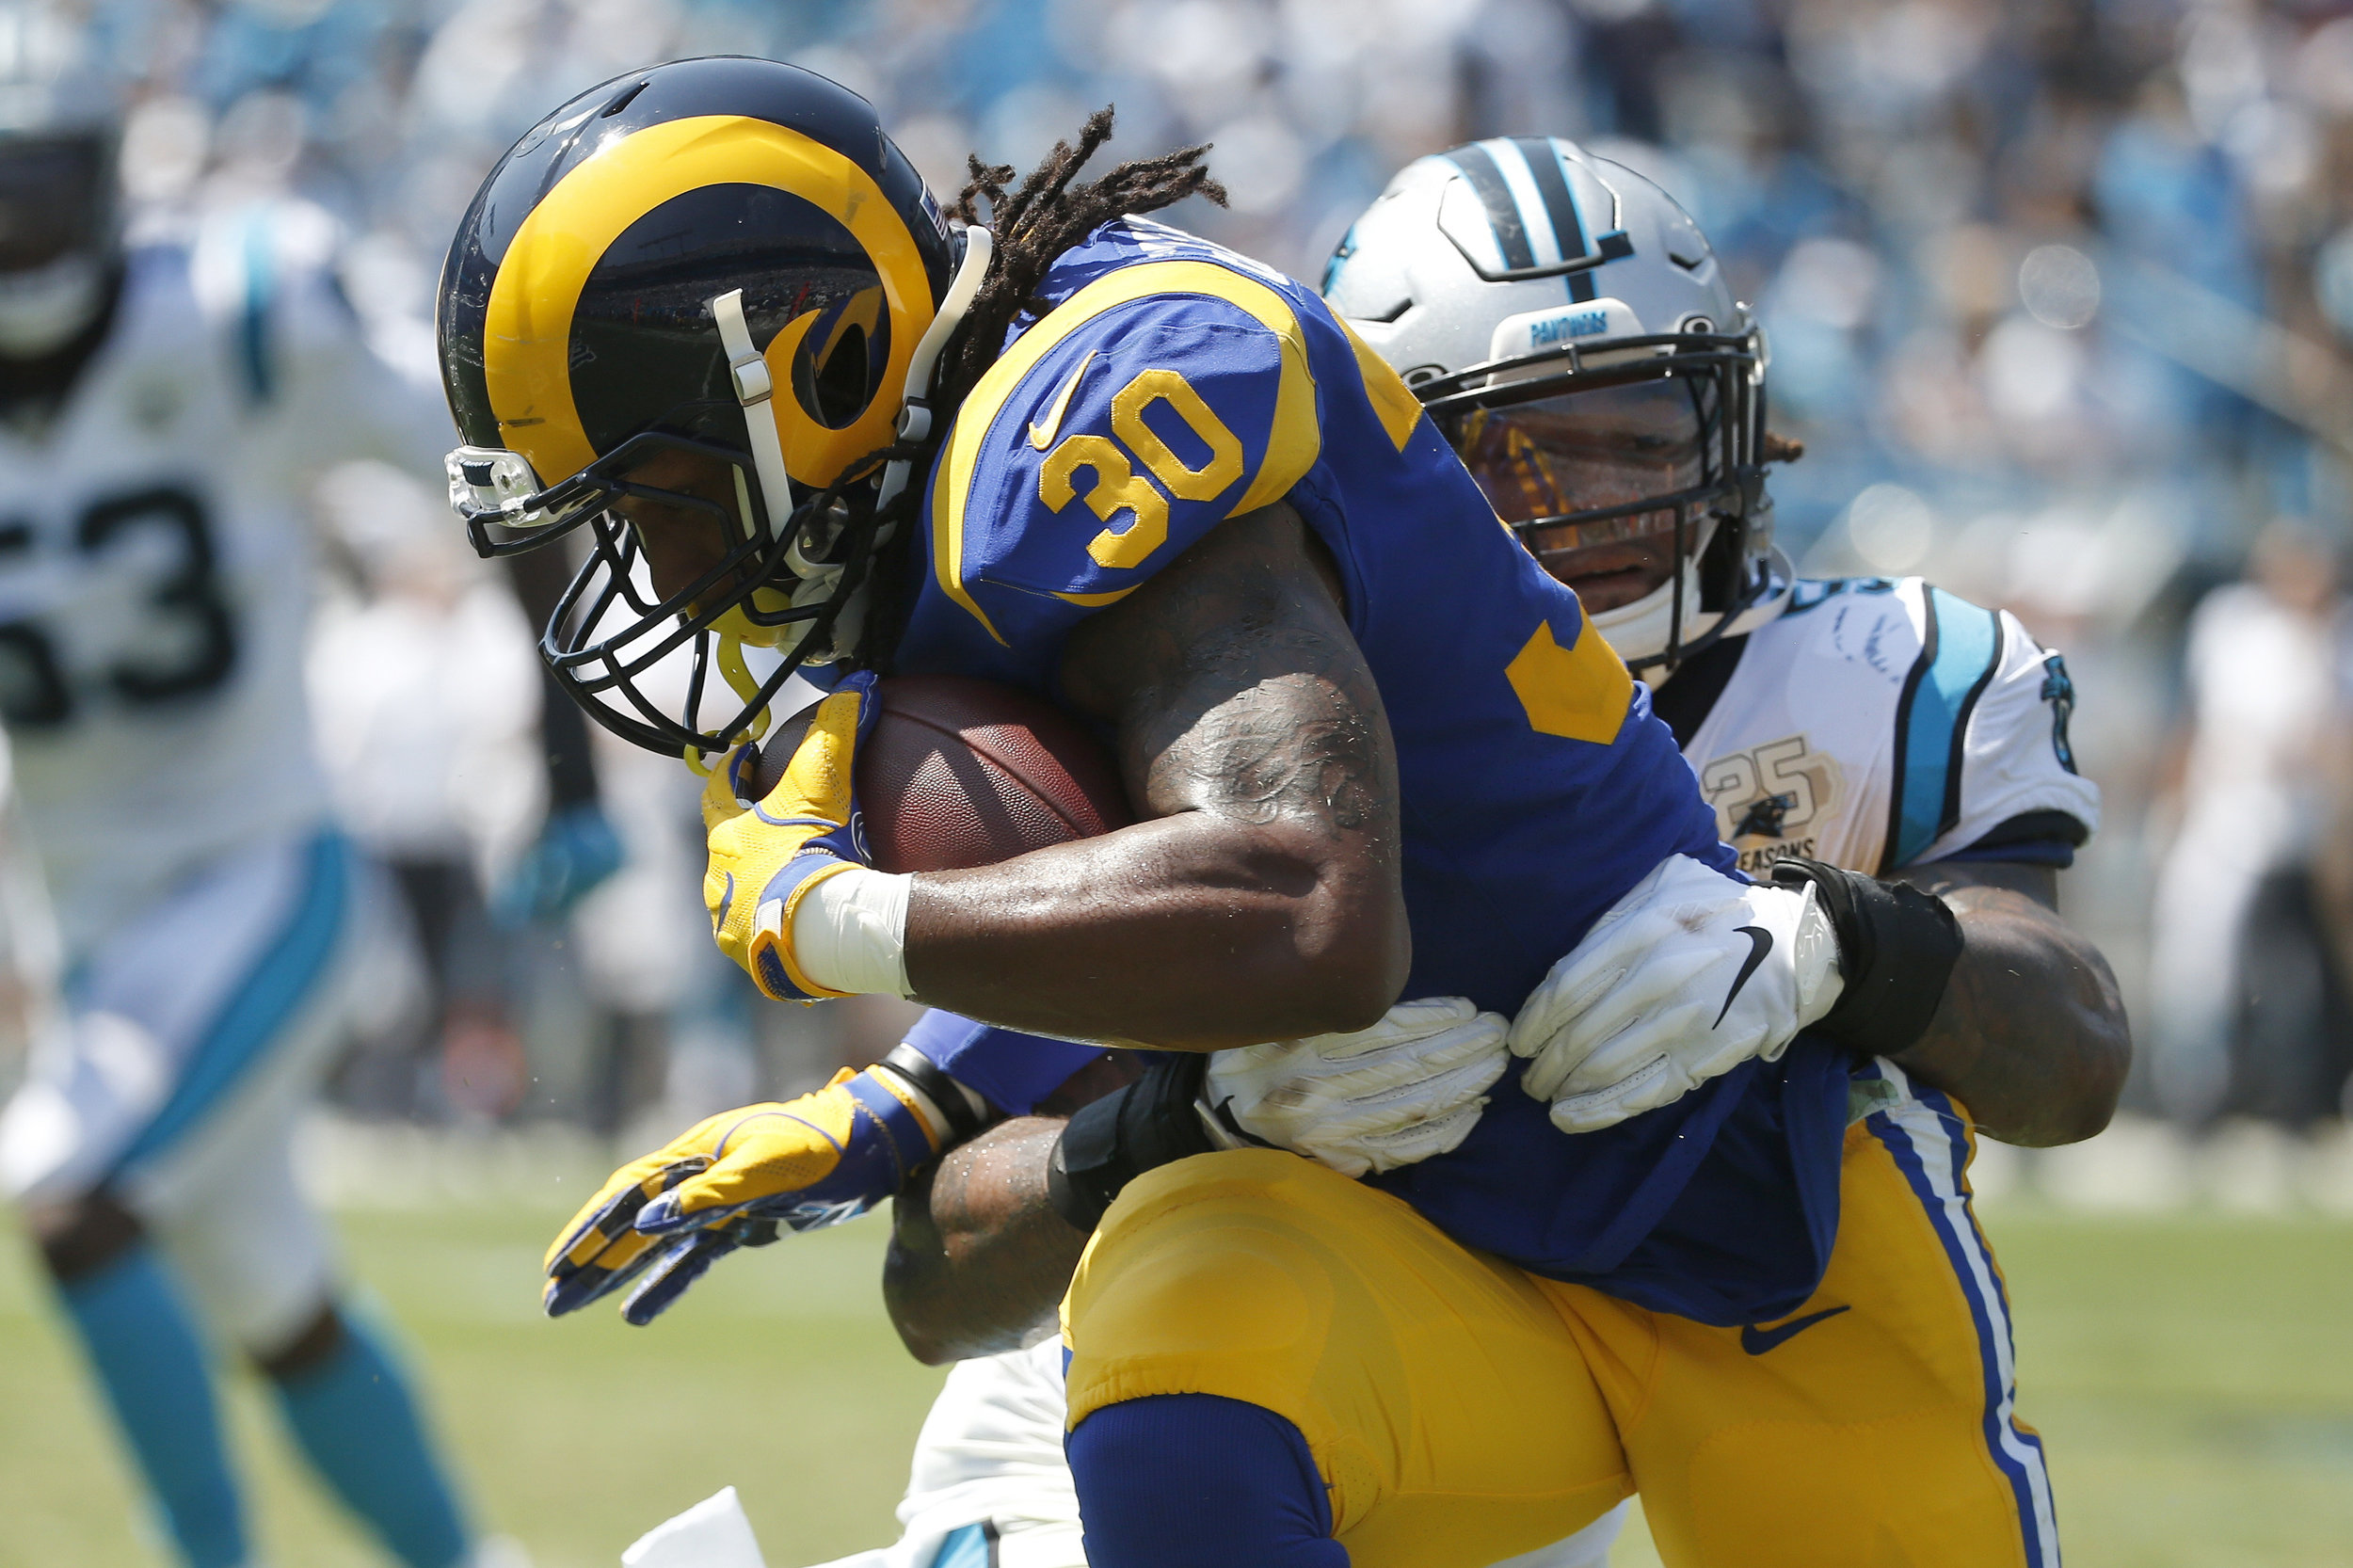 Gurley Fights For Extra Yards Against Carolina Panthers on Rams Opening Day (Bing Photos)